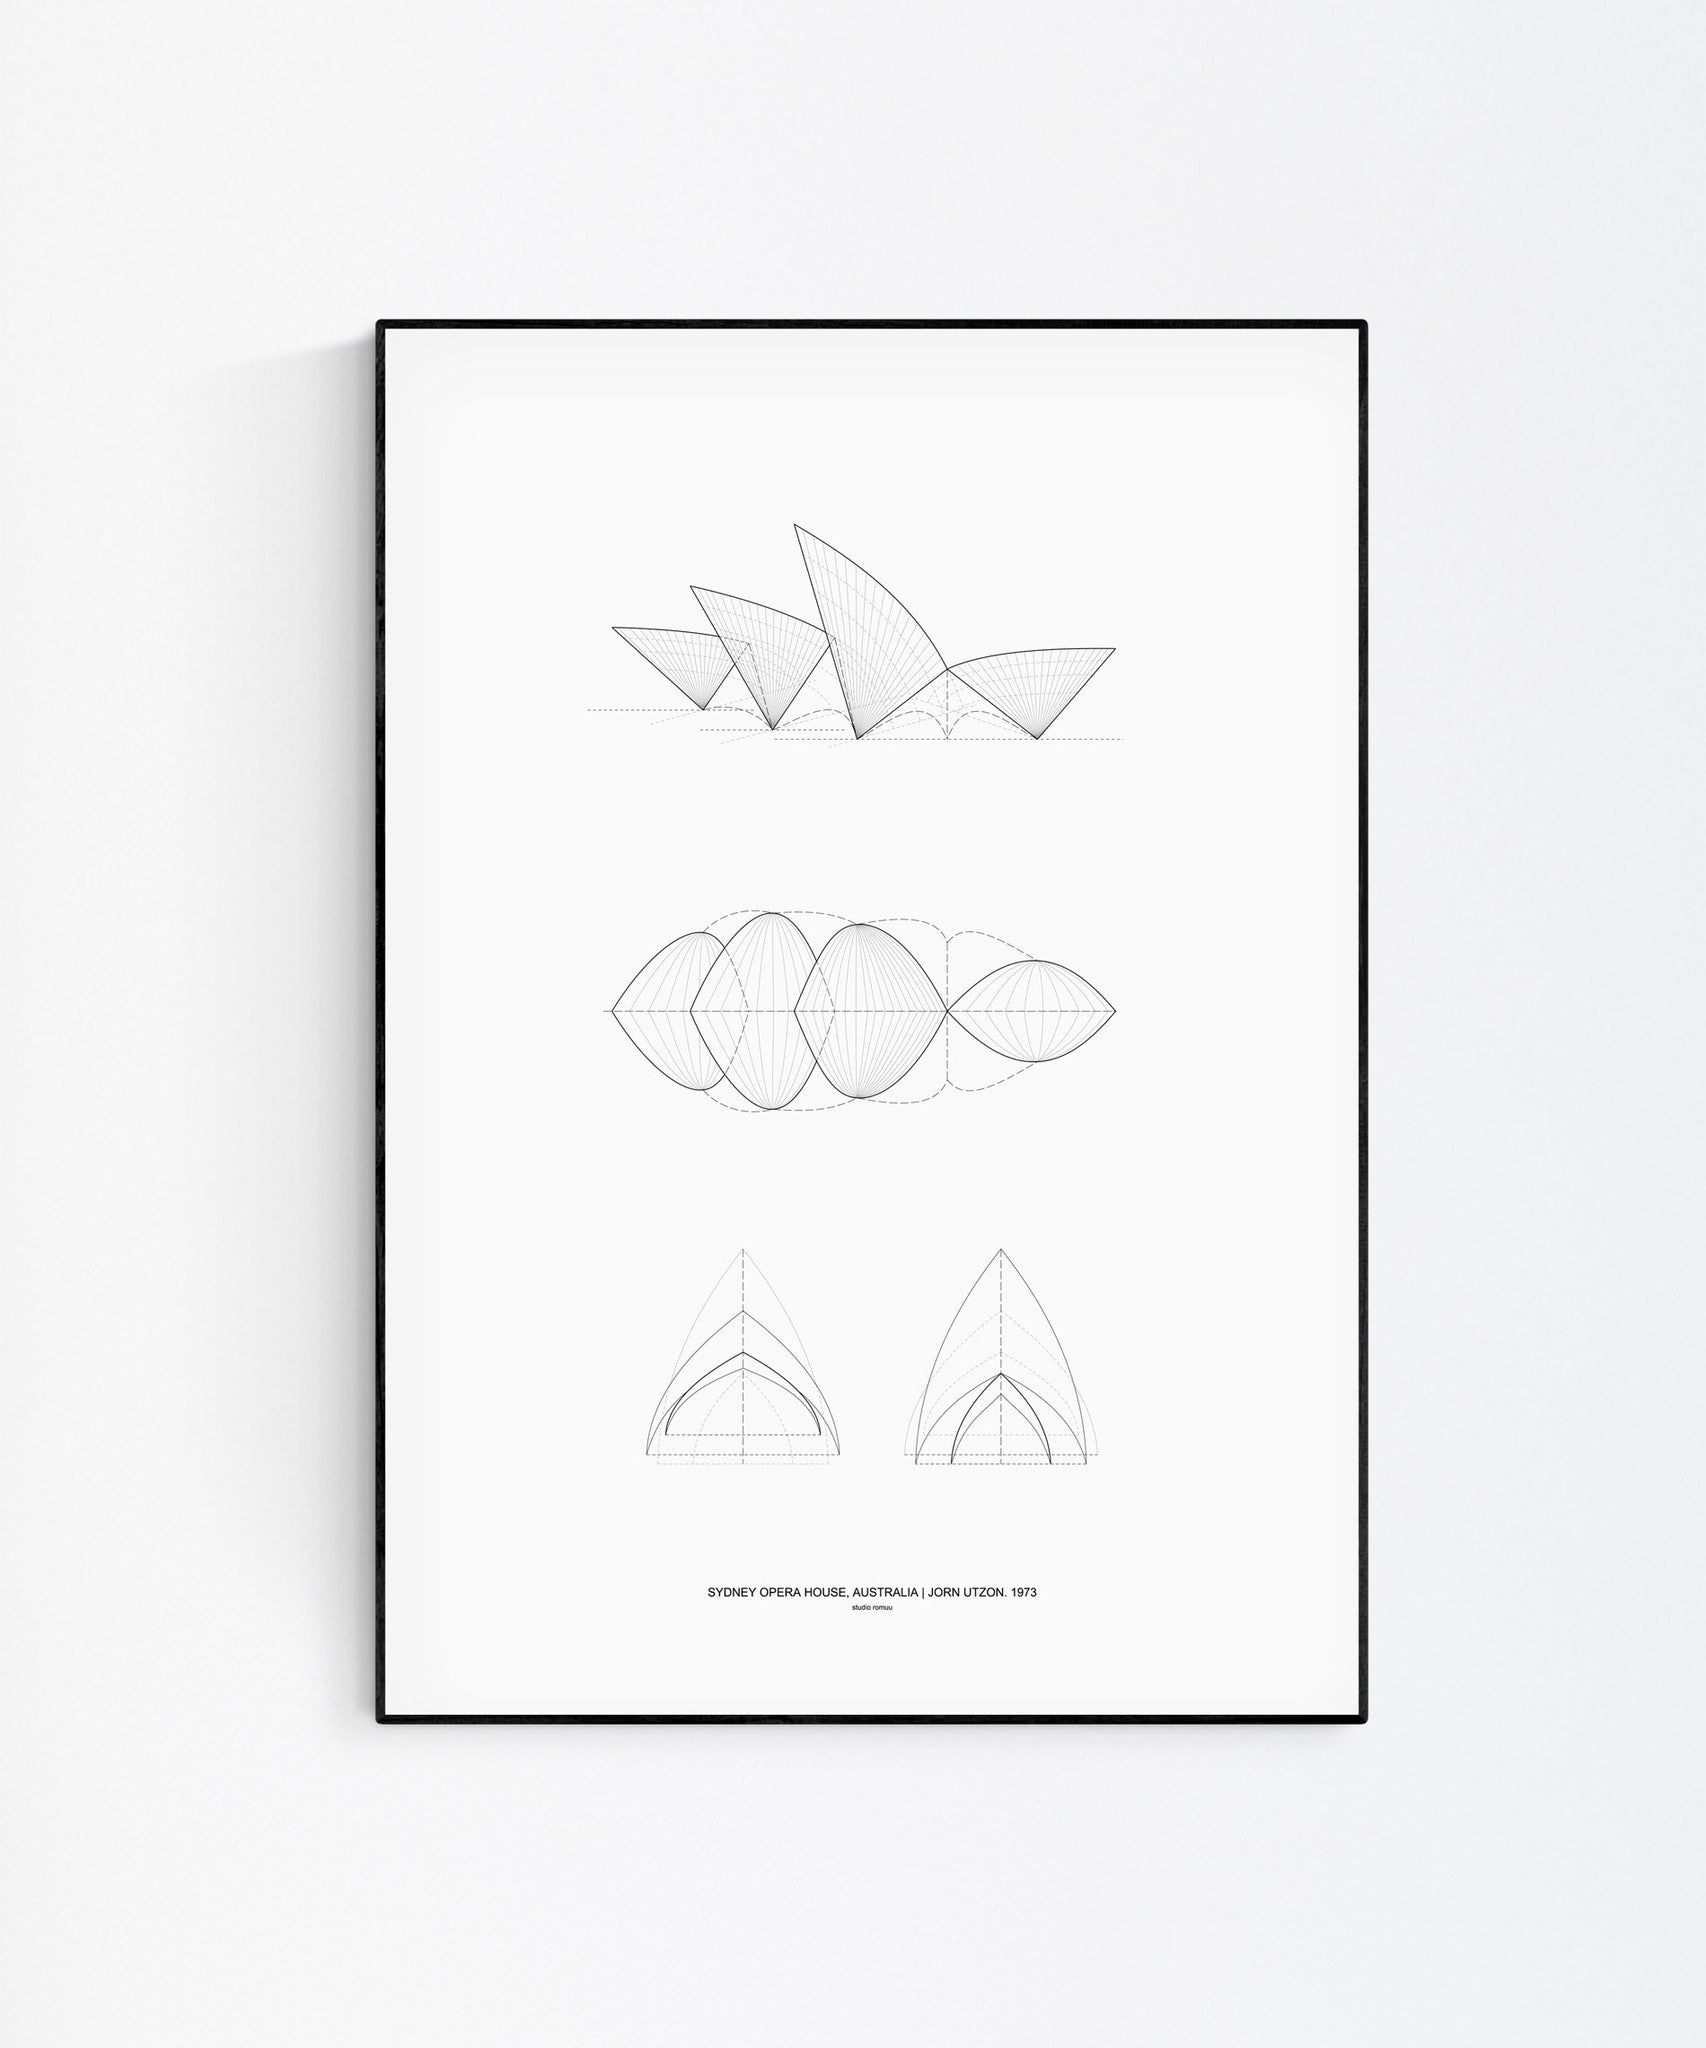 Sydney Opera House Architecture Print by Studio Romuu - Wall art